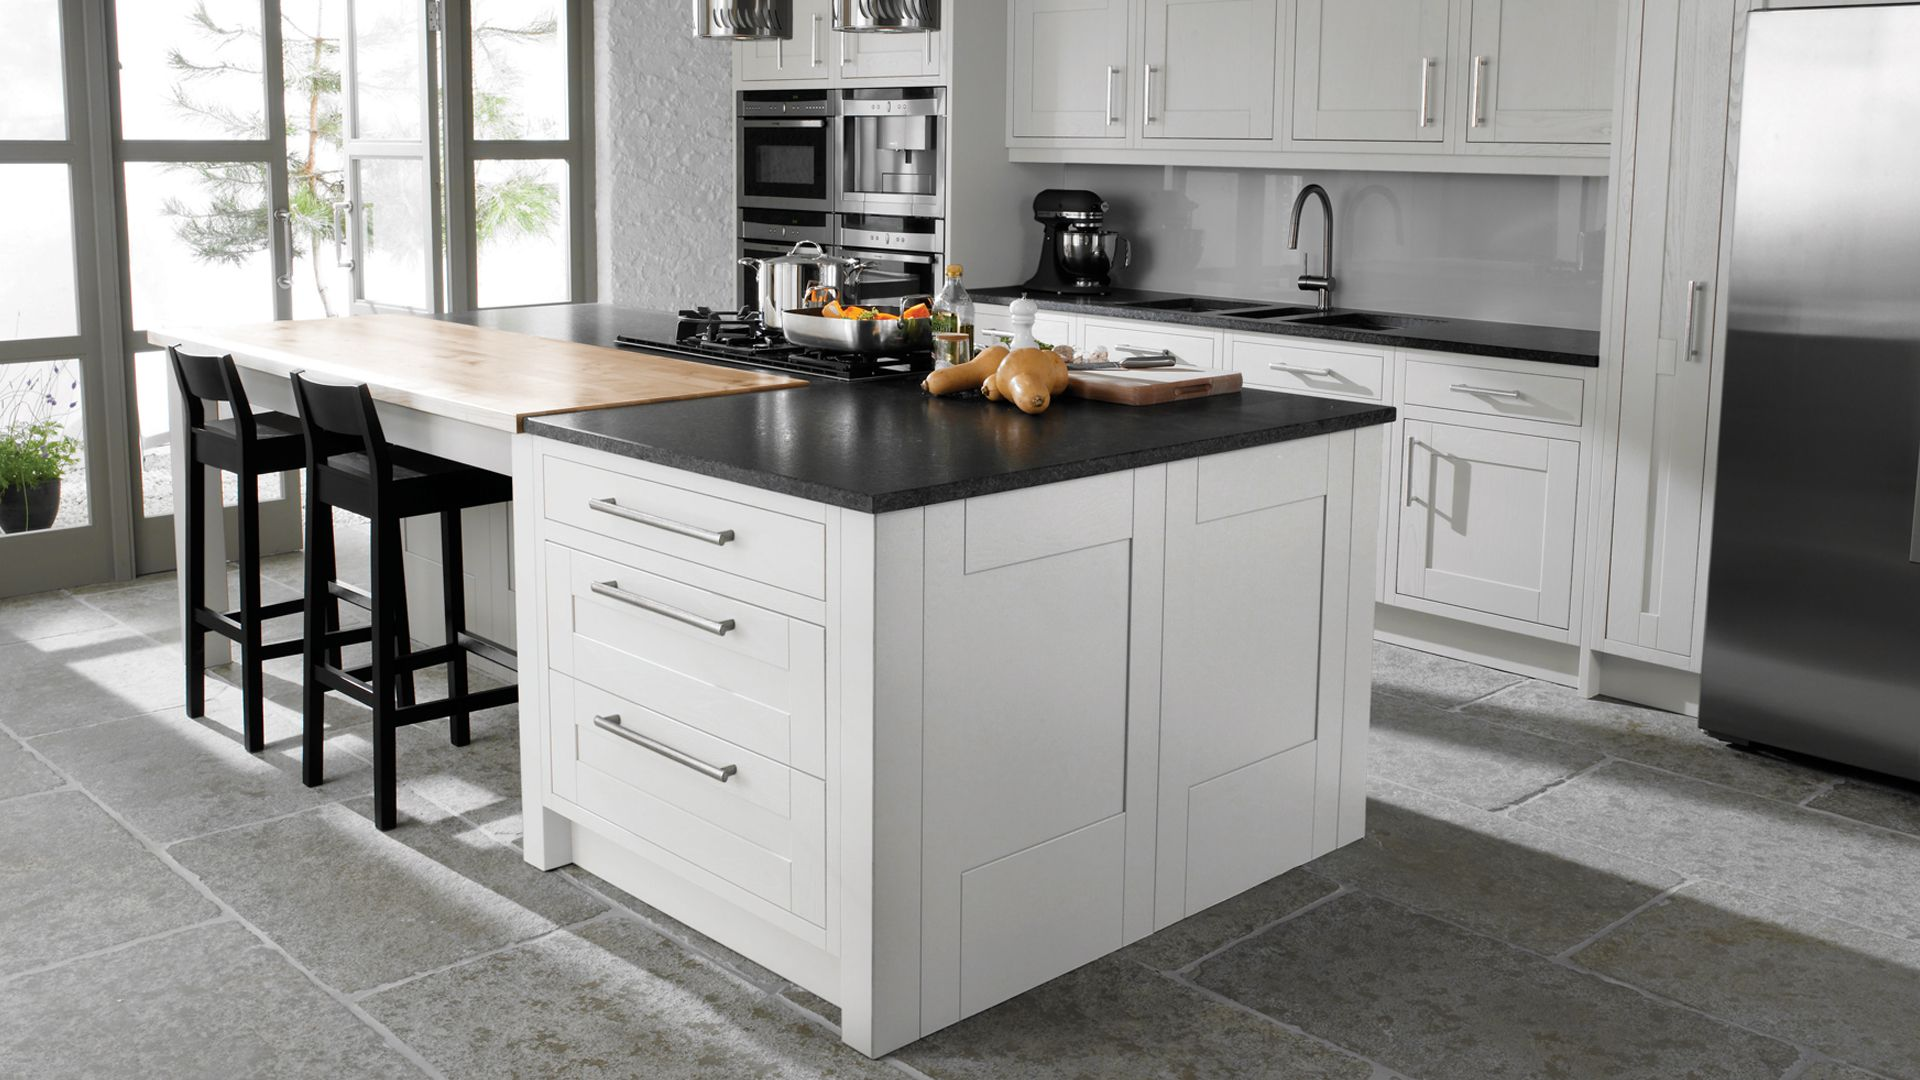 Grey Kitchen Floor White Cabinets White Kitchen Cabinets Black Floors .cabinets And Drawer